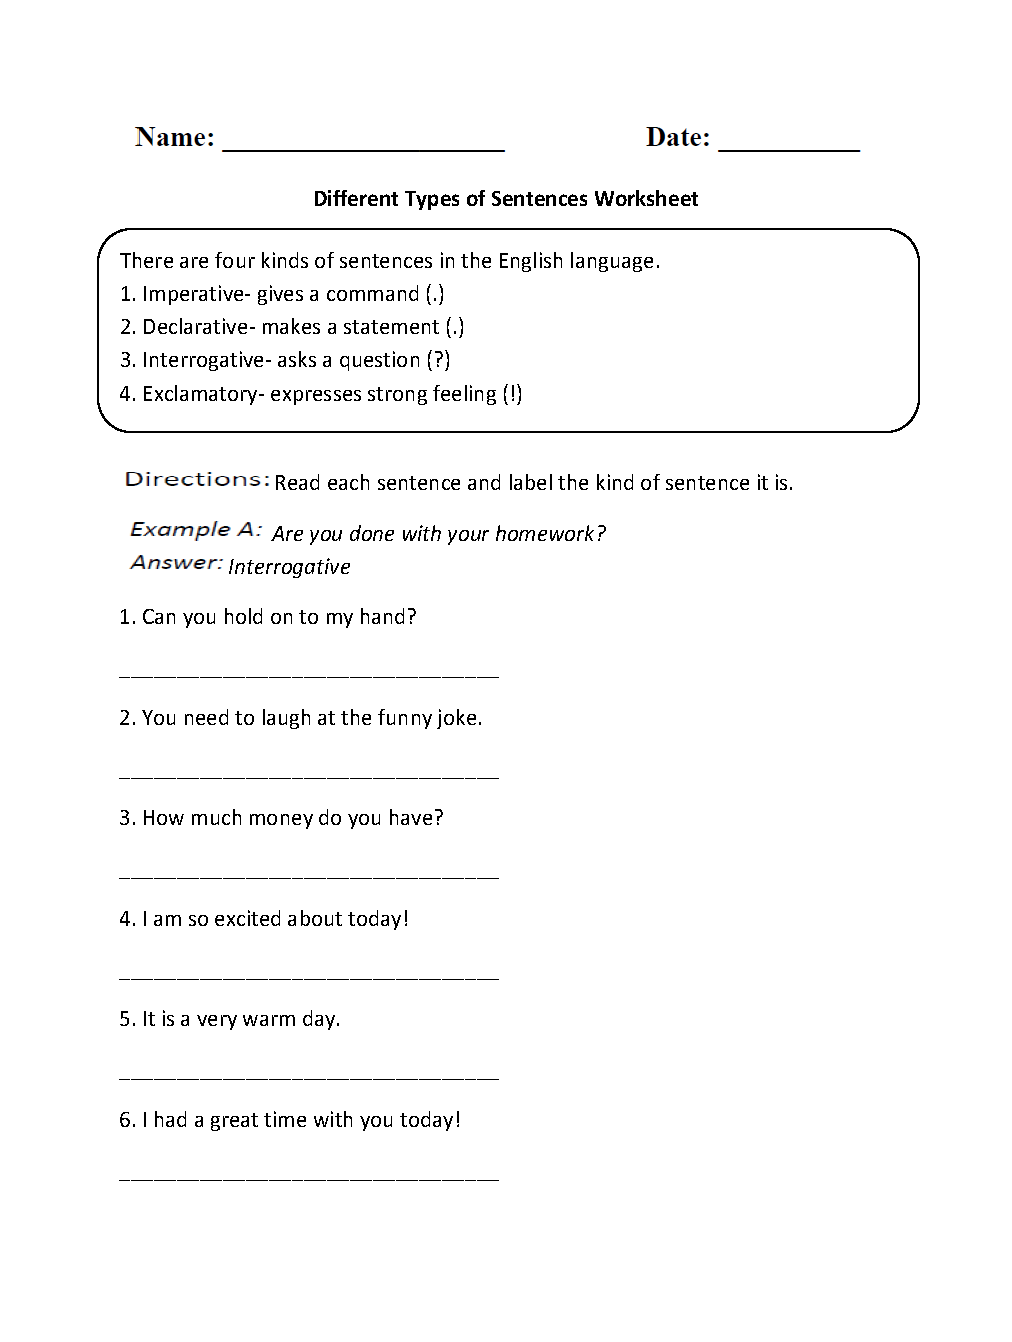 Different Types of Sentences Worksheet  5th grade Writing  learning, math worksheets, worksheets for teachers, and worksheets Exclamatory Sentence Example Worksheets 1342 x 1012